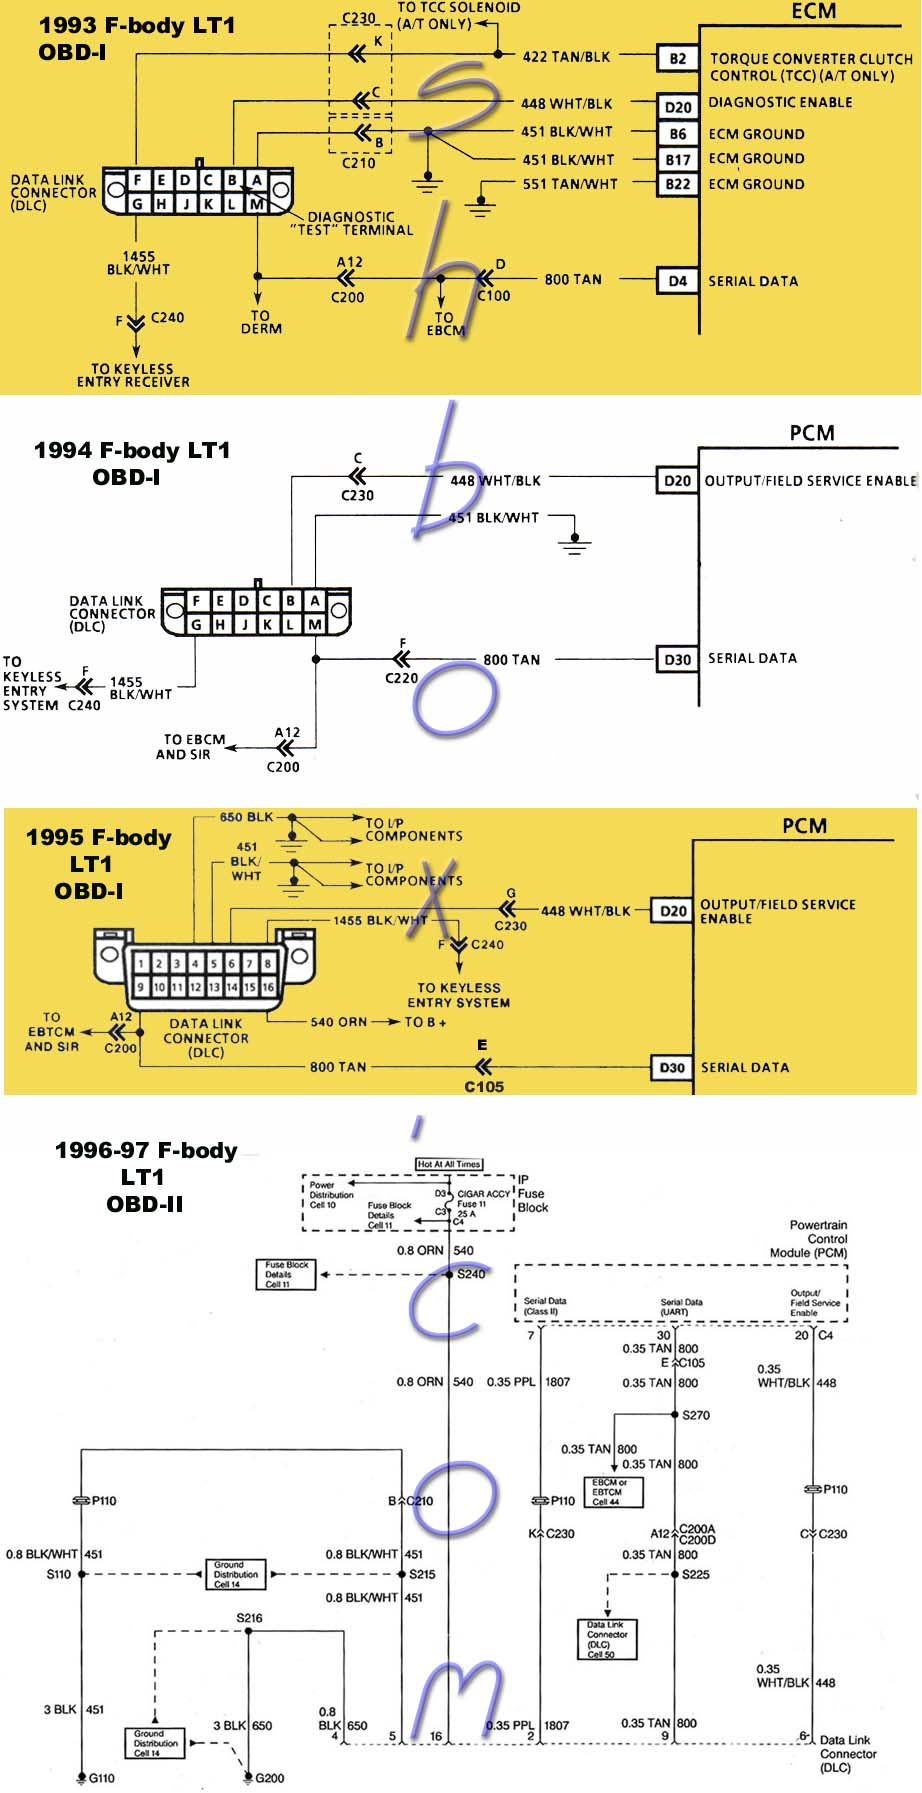 Obd1 Connector Location Diagram